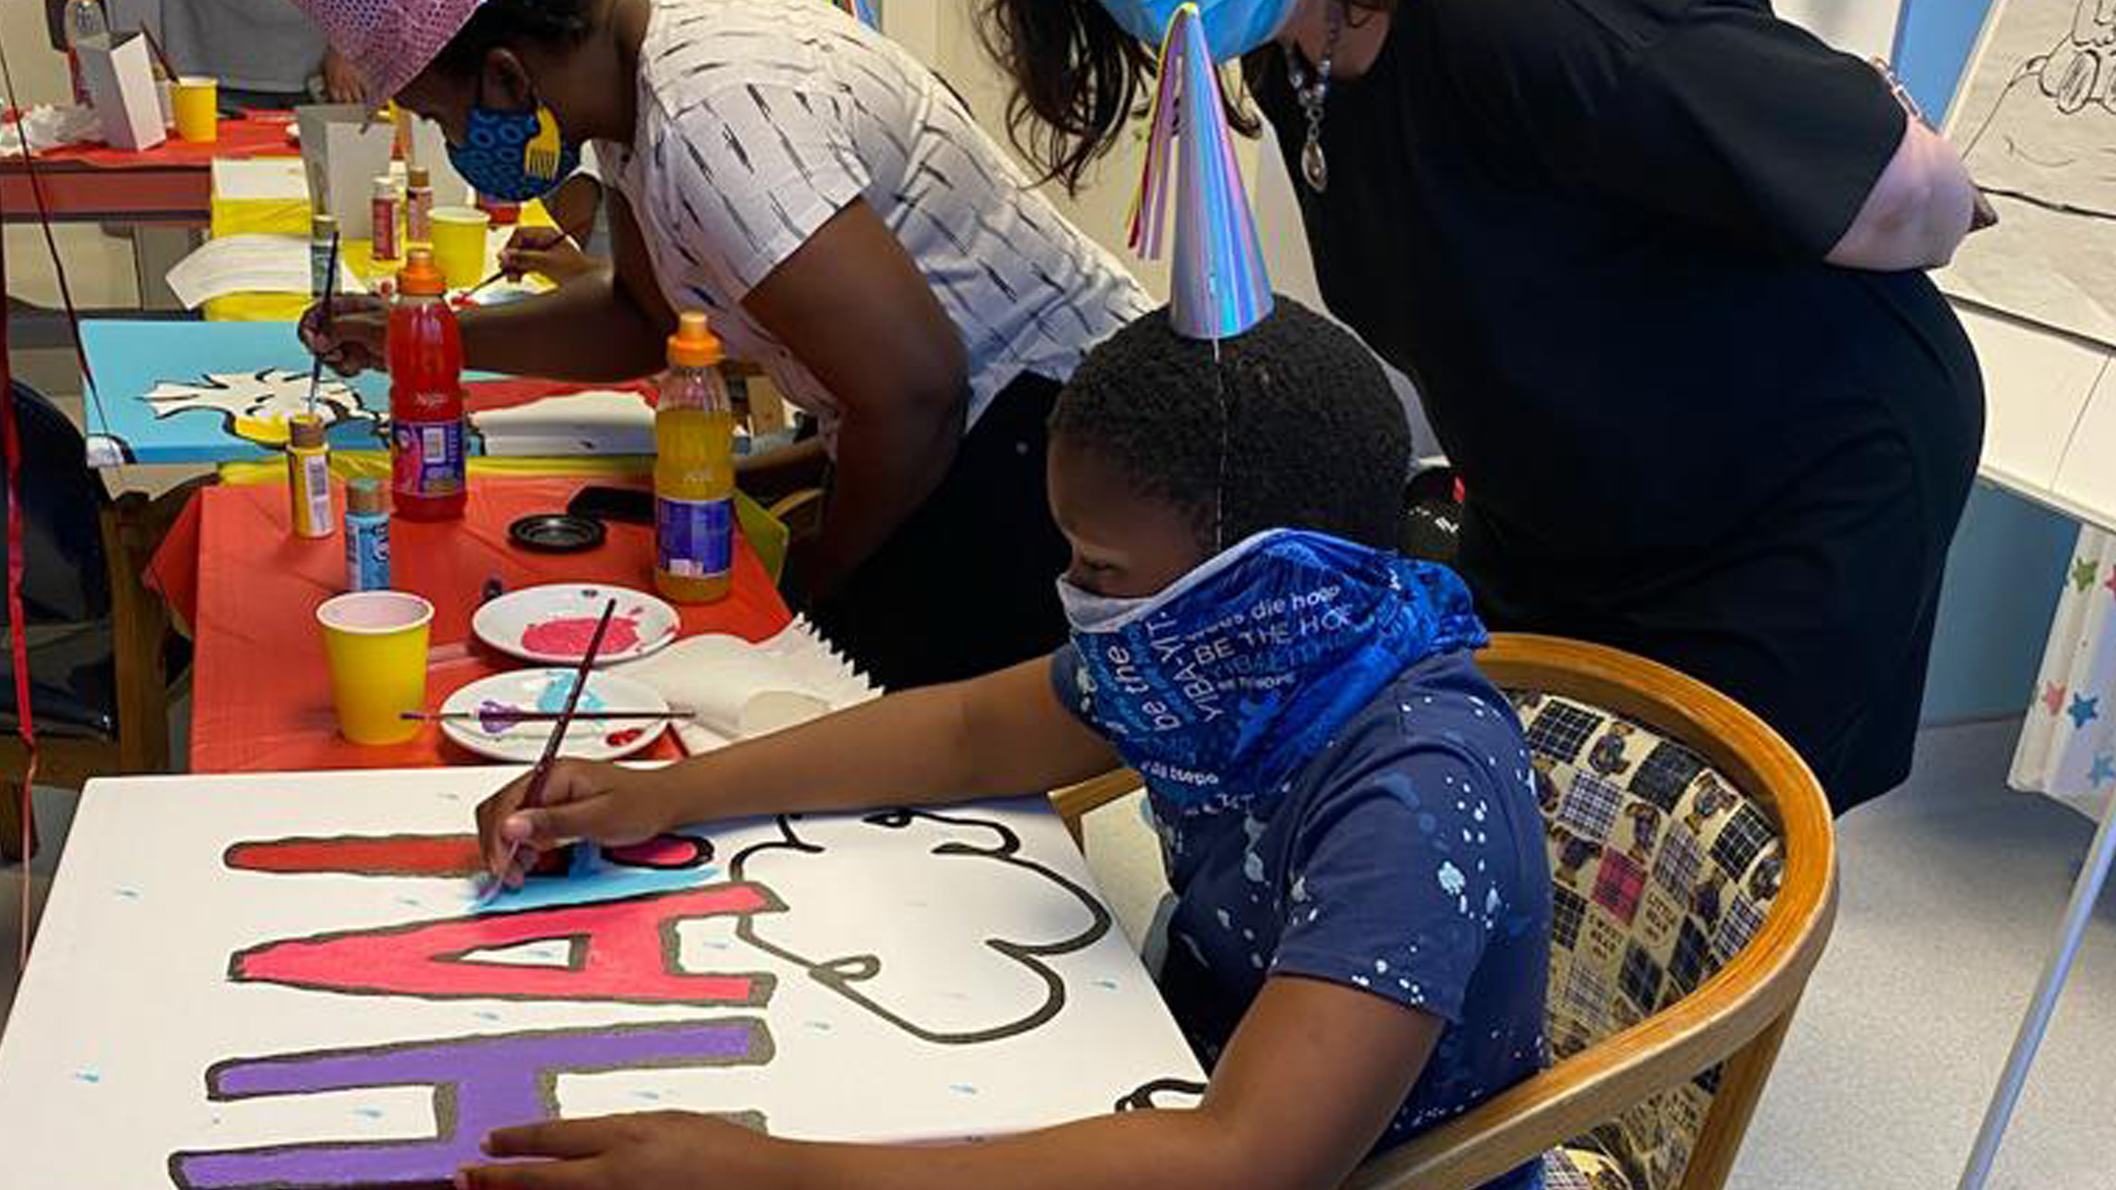 Little boy wearing a facemask is sitting at a table and painting a mural.